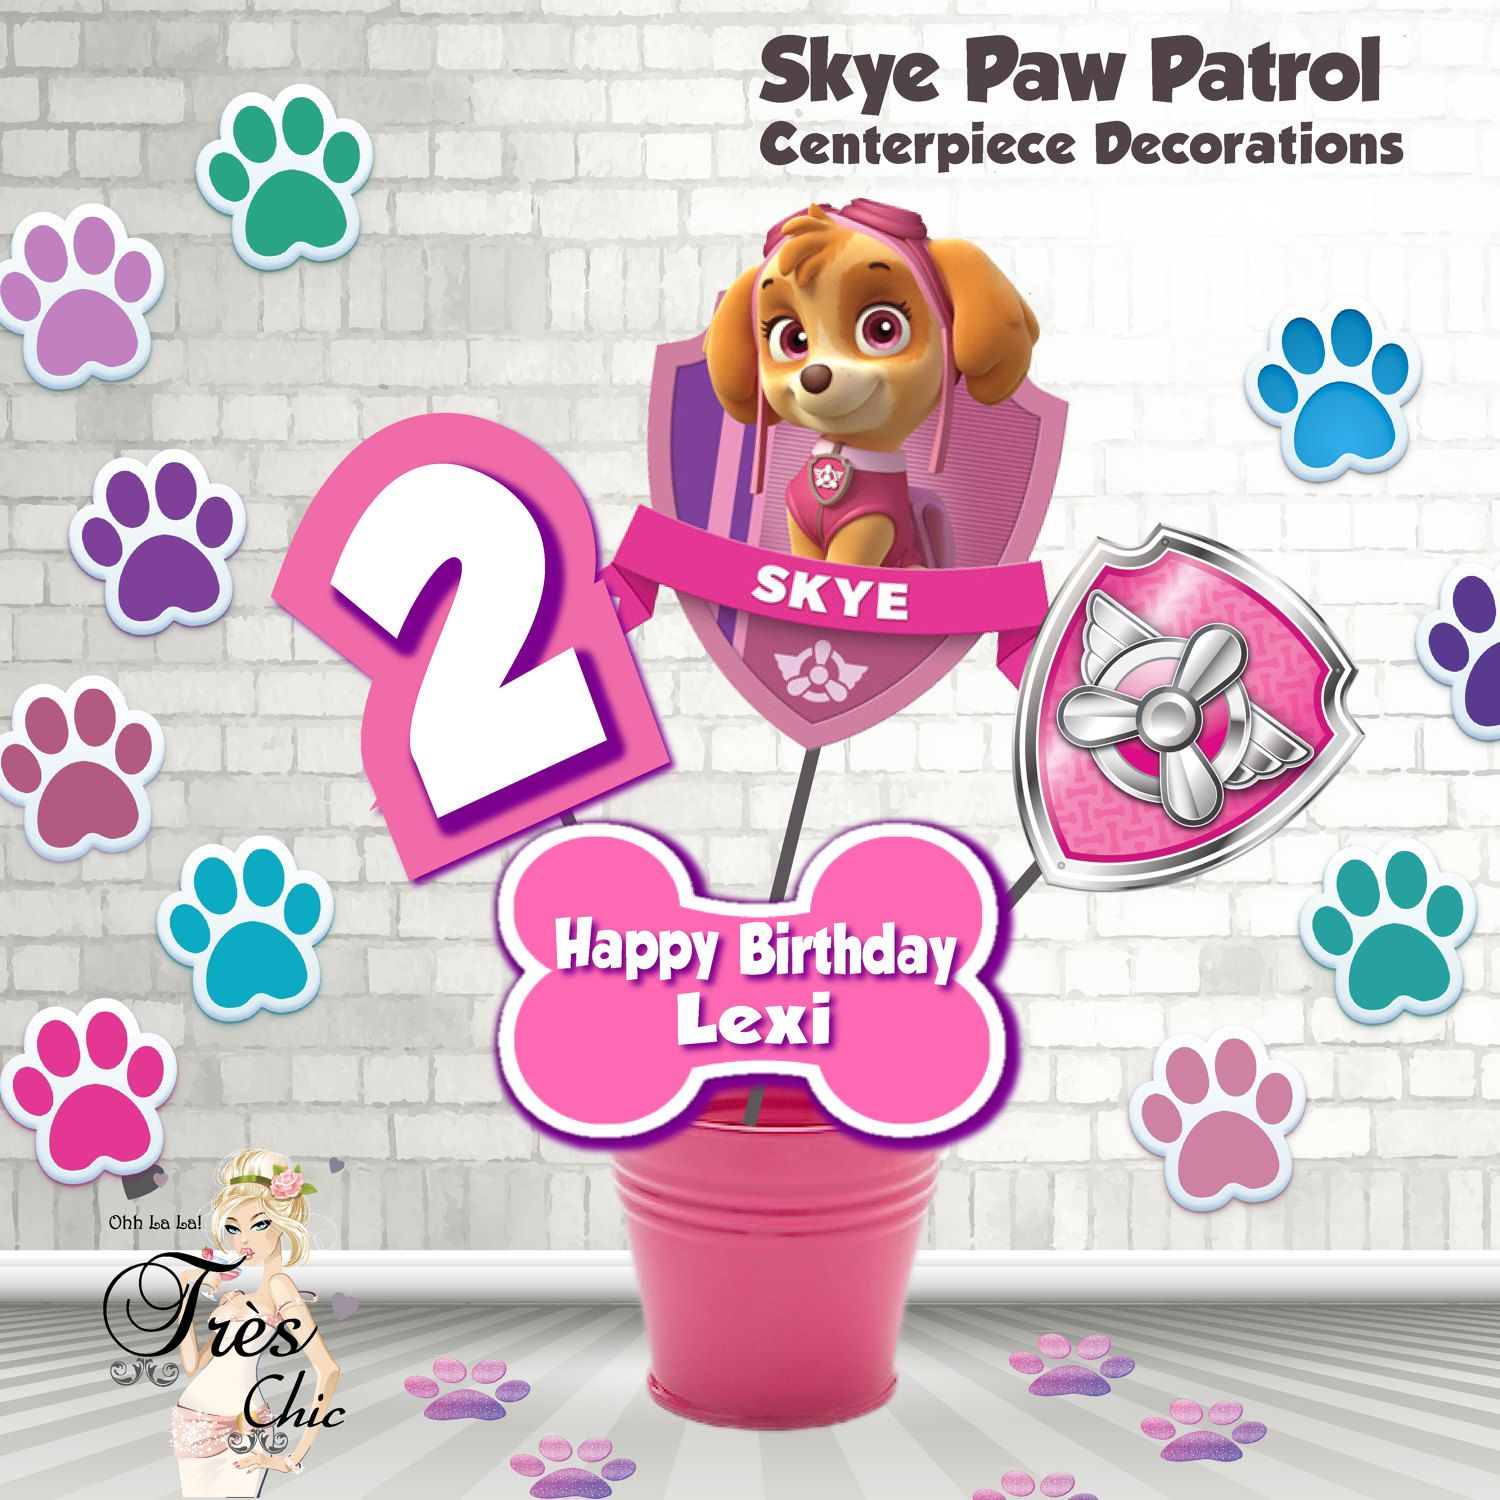 Skye Paw Patrol Birthday Decorations,Skye Large Centerpiece,Skye ...